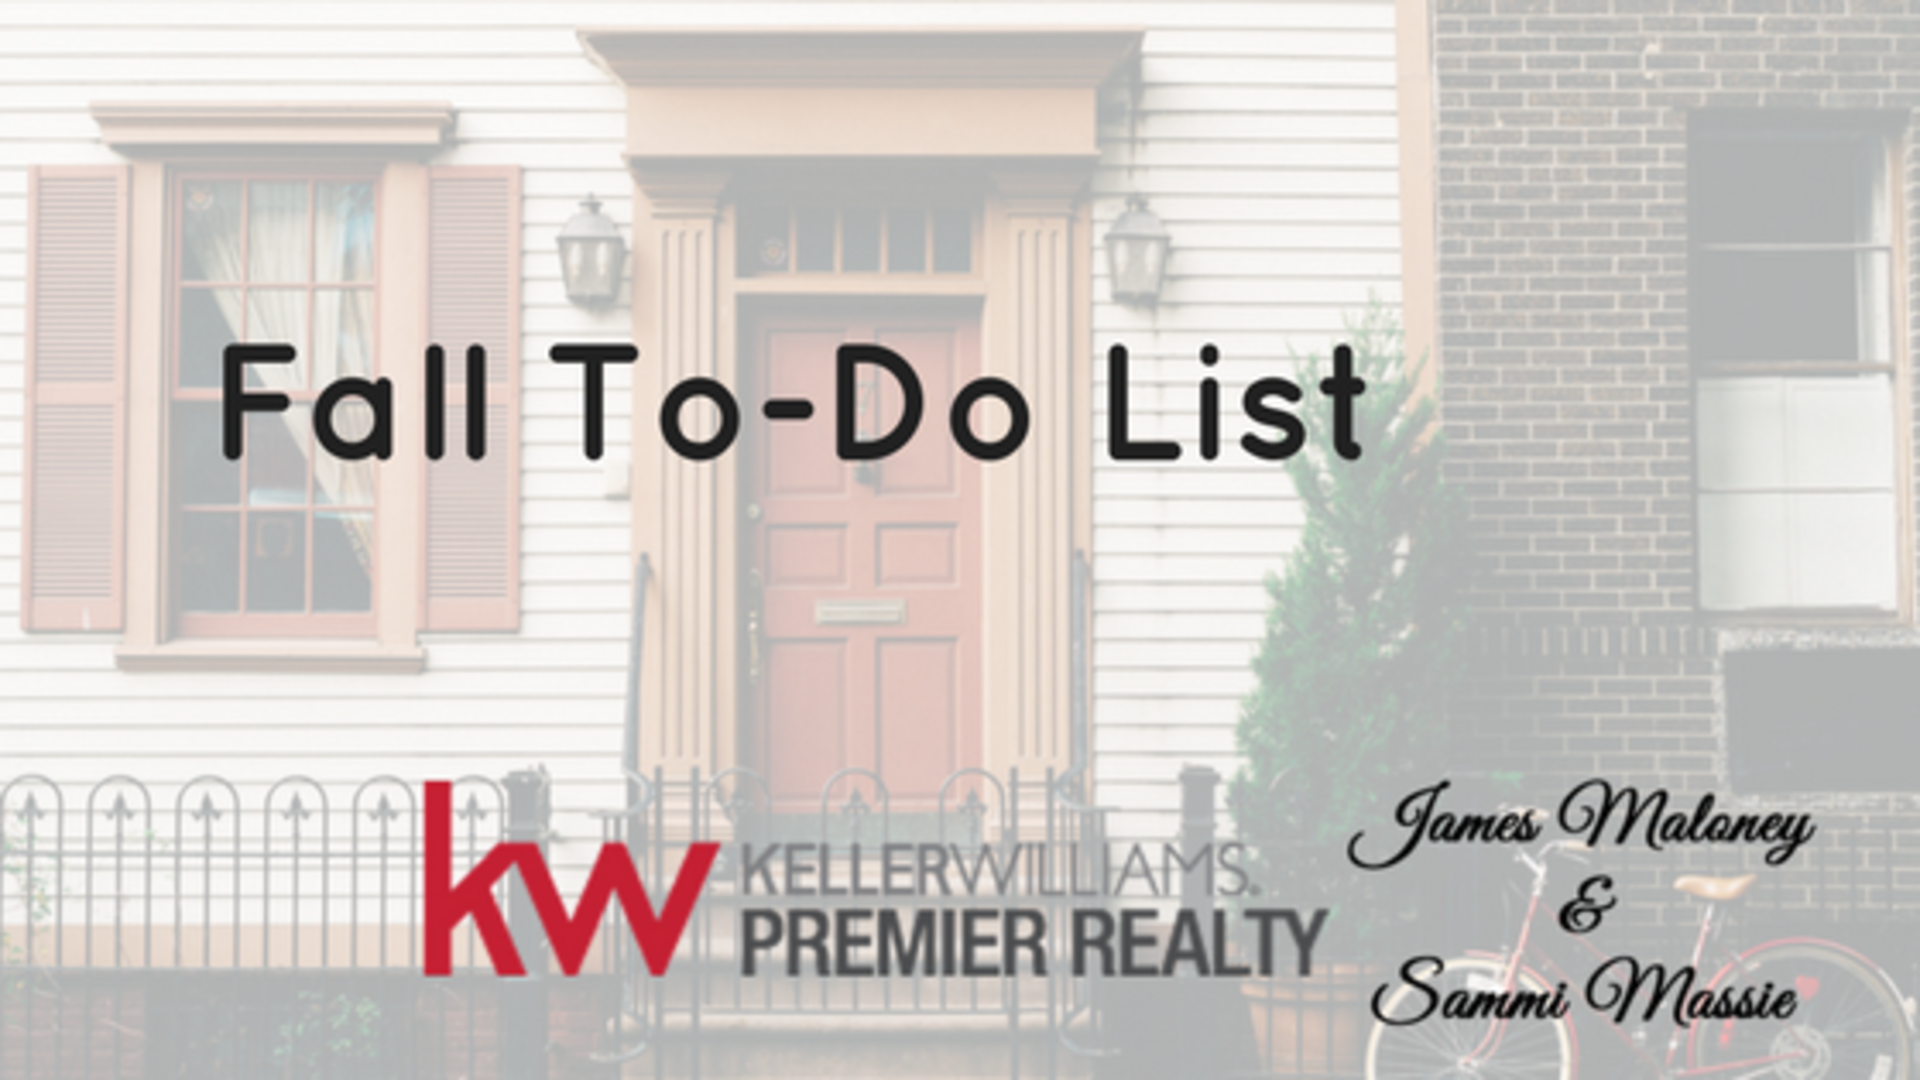 Fall To-Do List for Your House